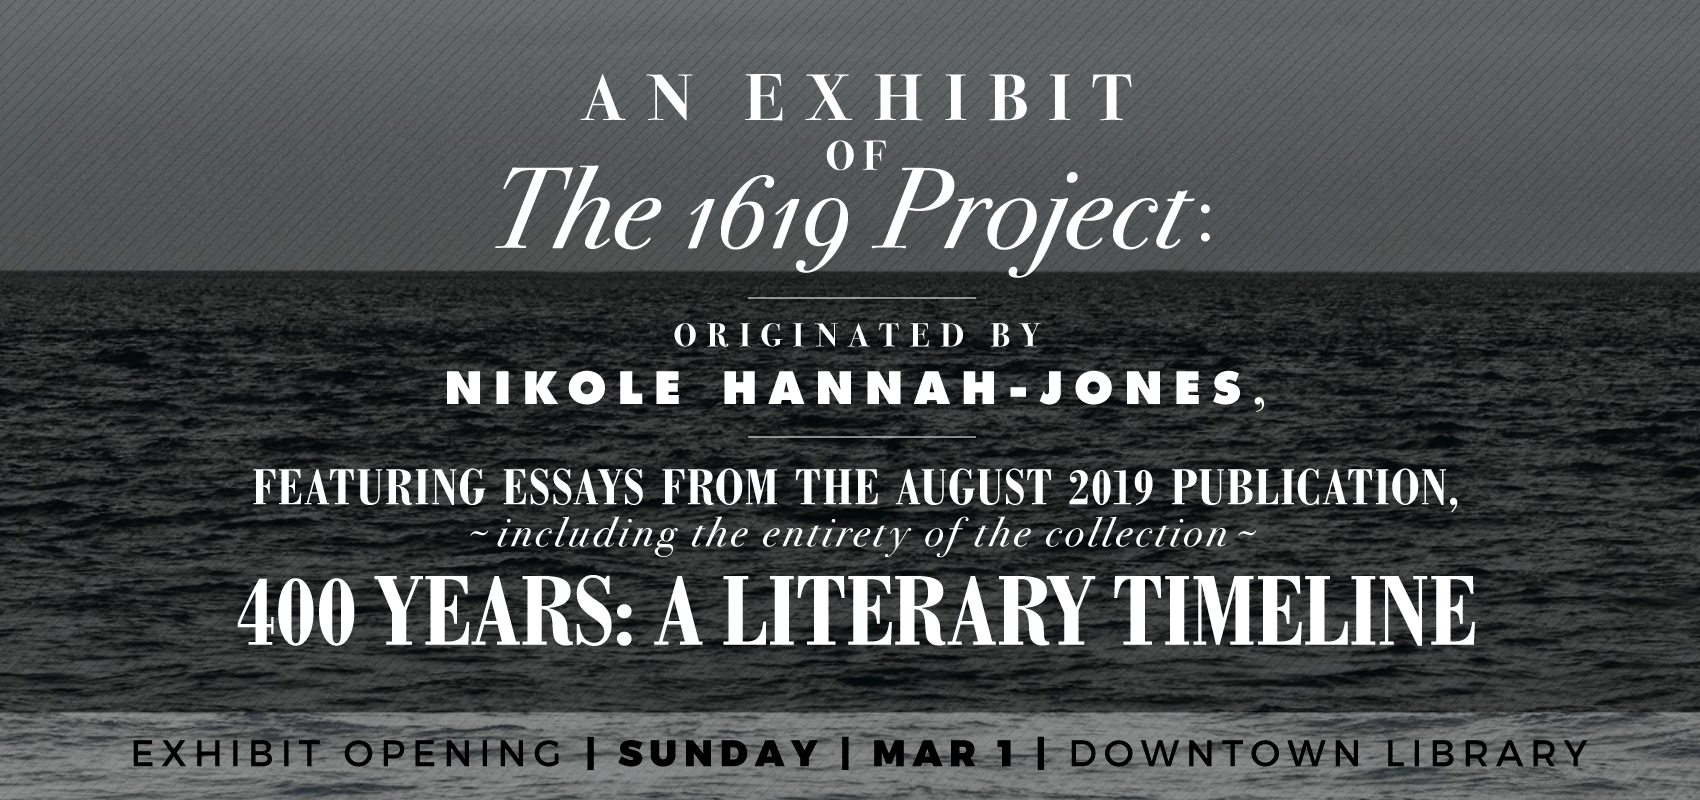 An Exhibit of The 1619 Project: Originated by Nikole Hannah-Jones, Featuring Essays from the August 19 Publication, incl. .